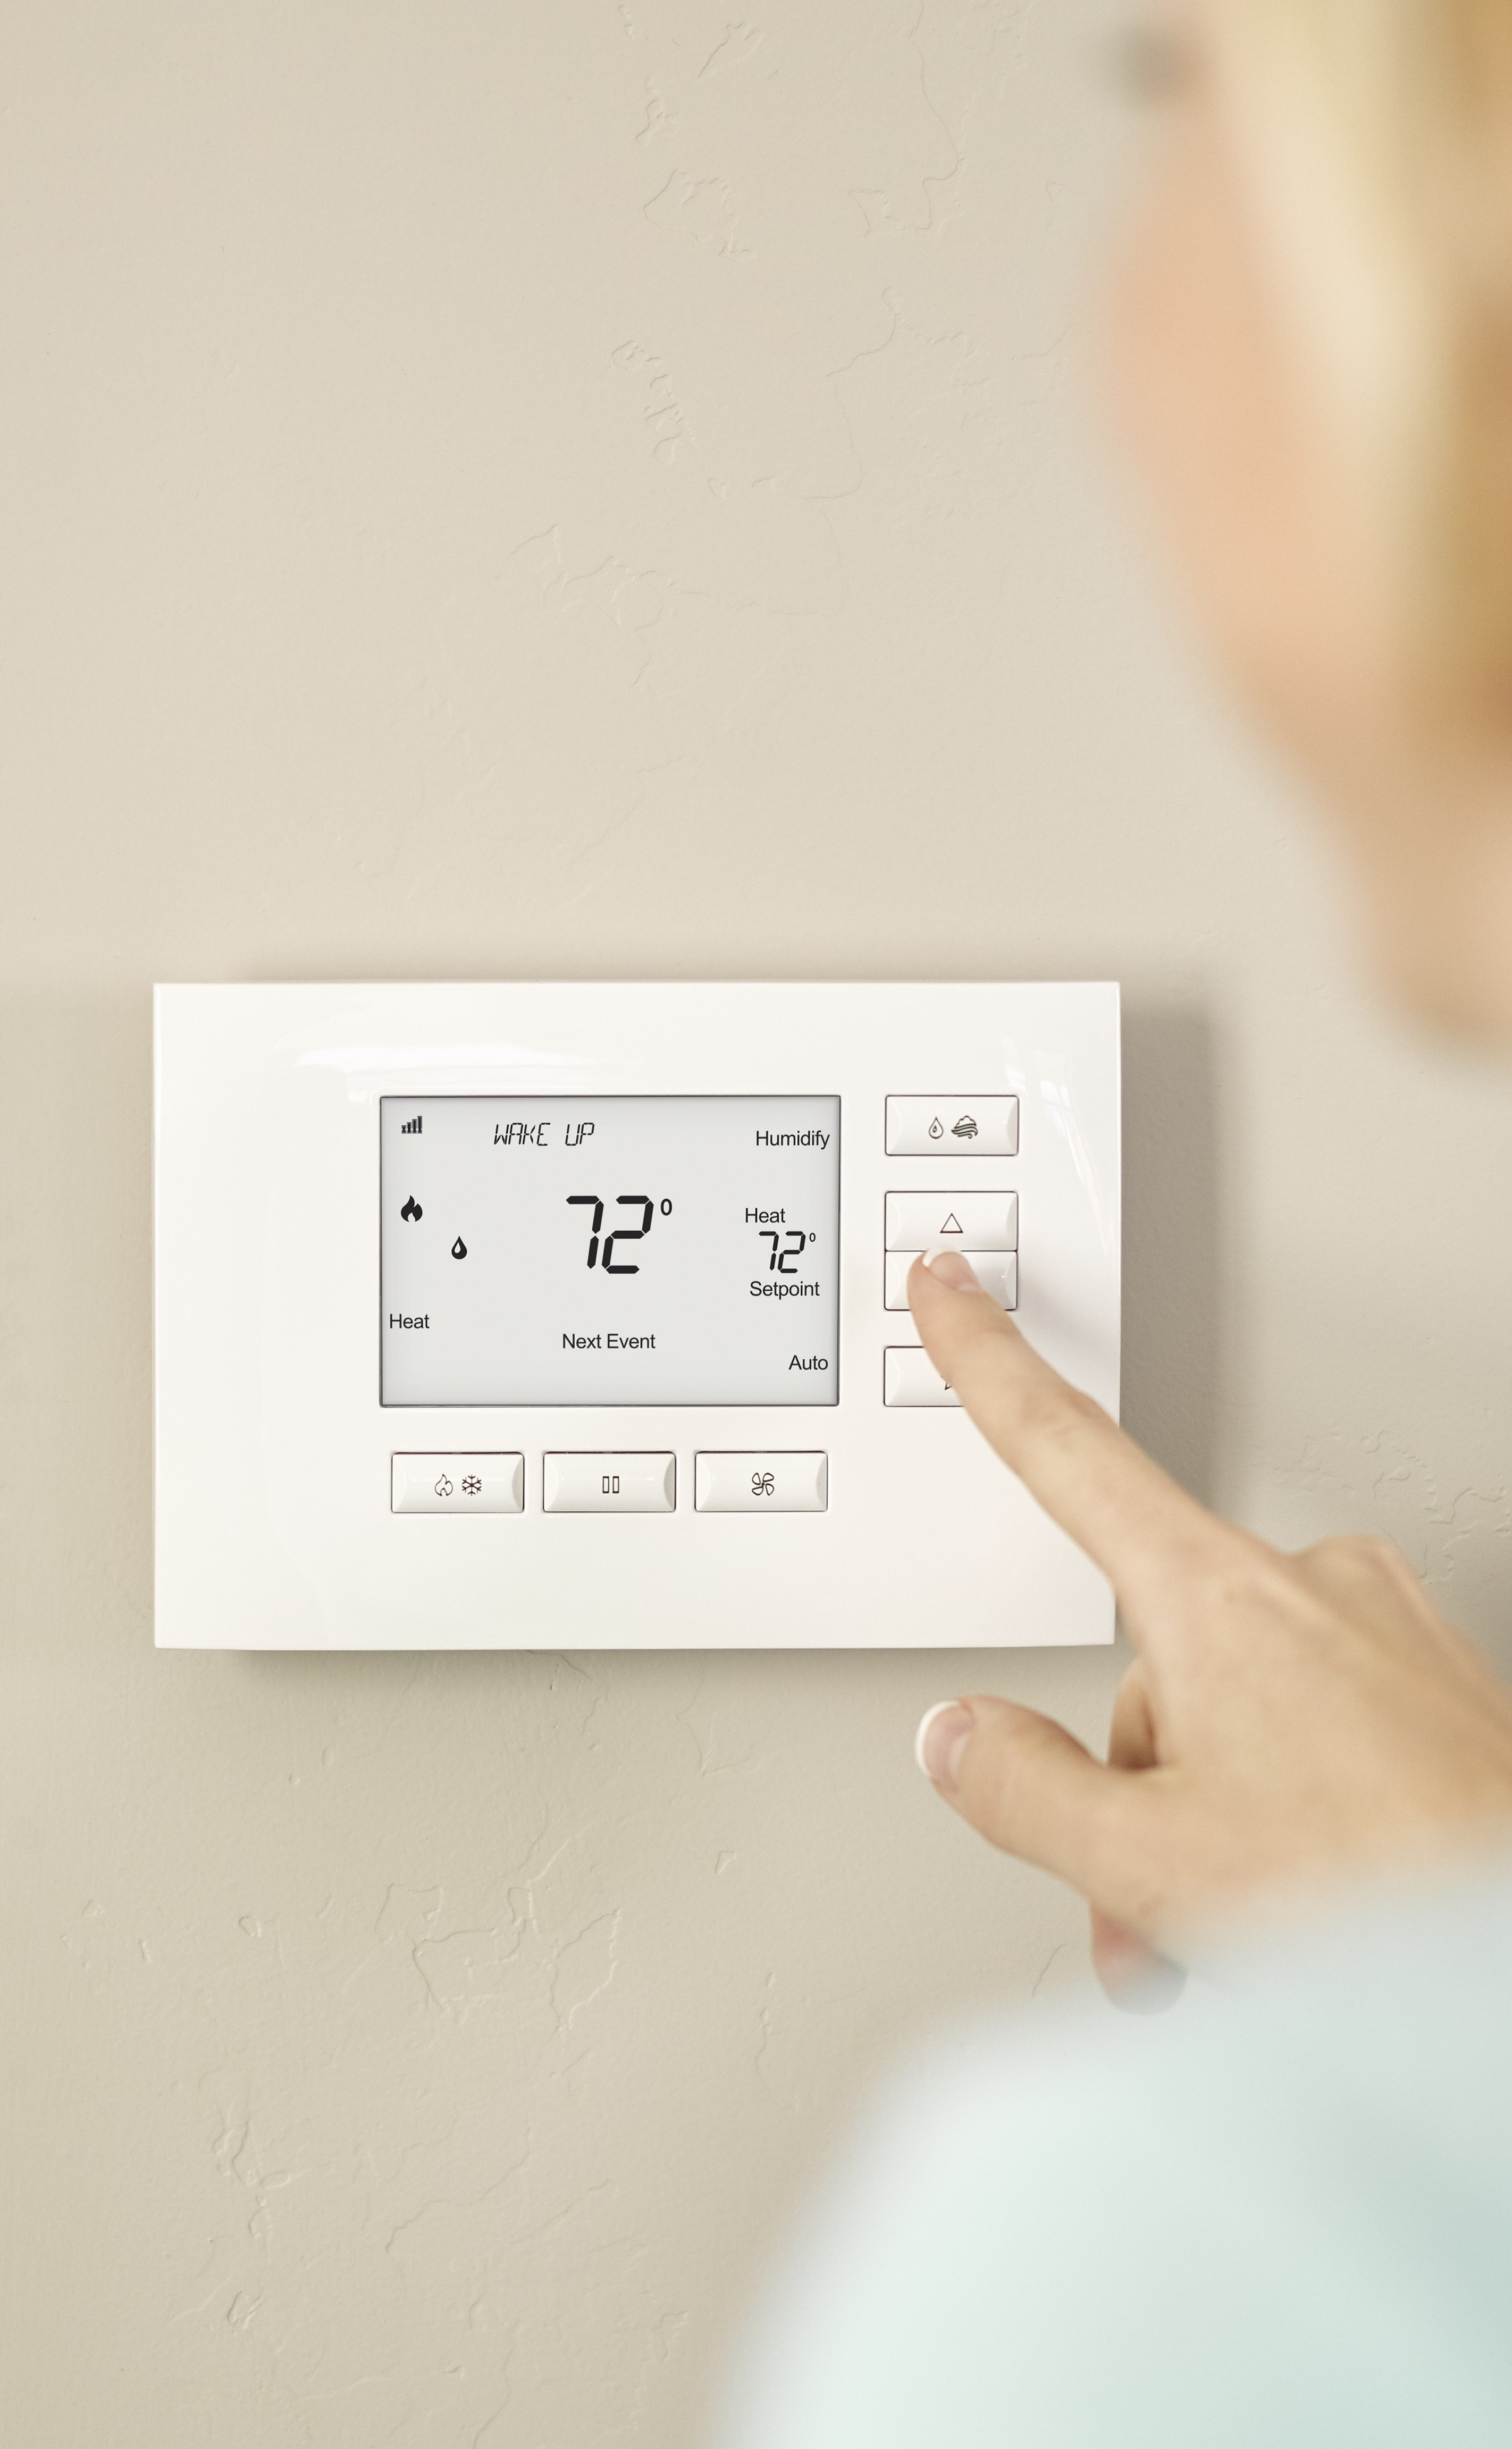 Tablet4 Climate Control2 Phone2 & Control4 Home Automation - Nissen Technologies